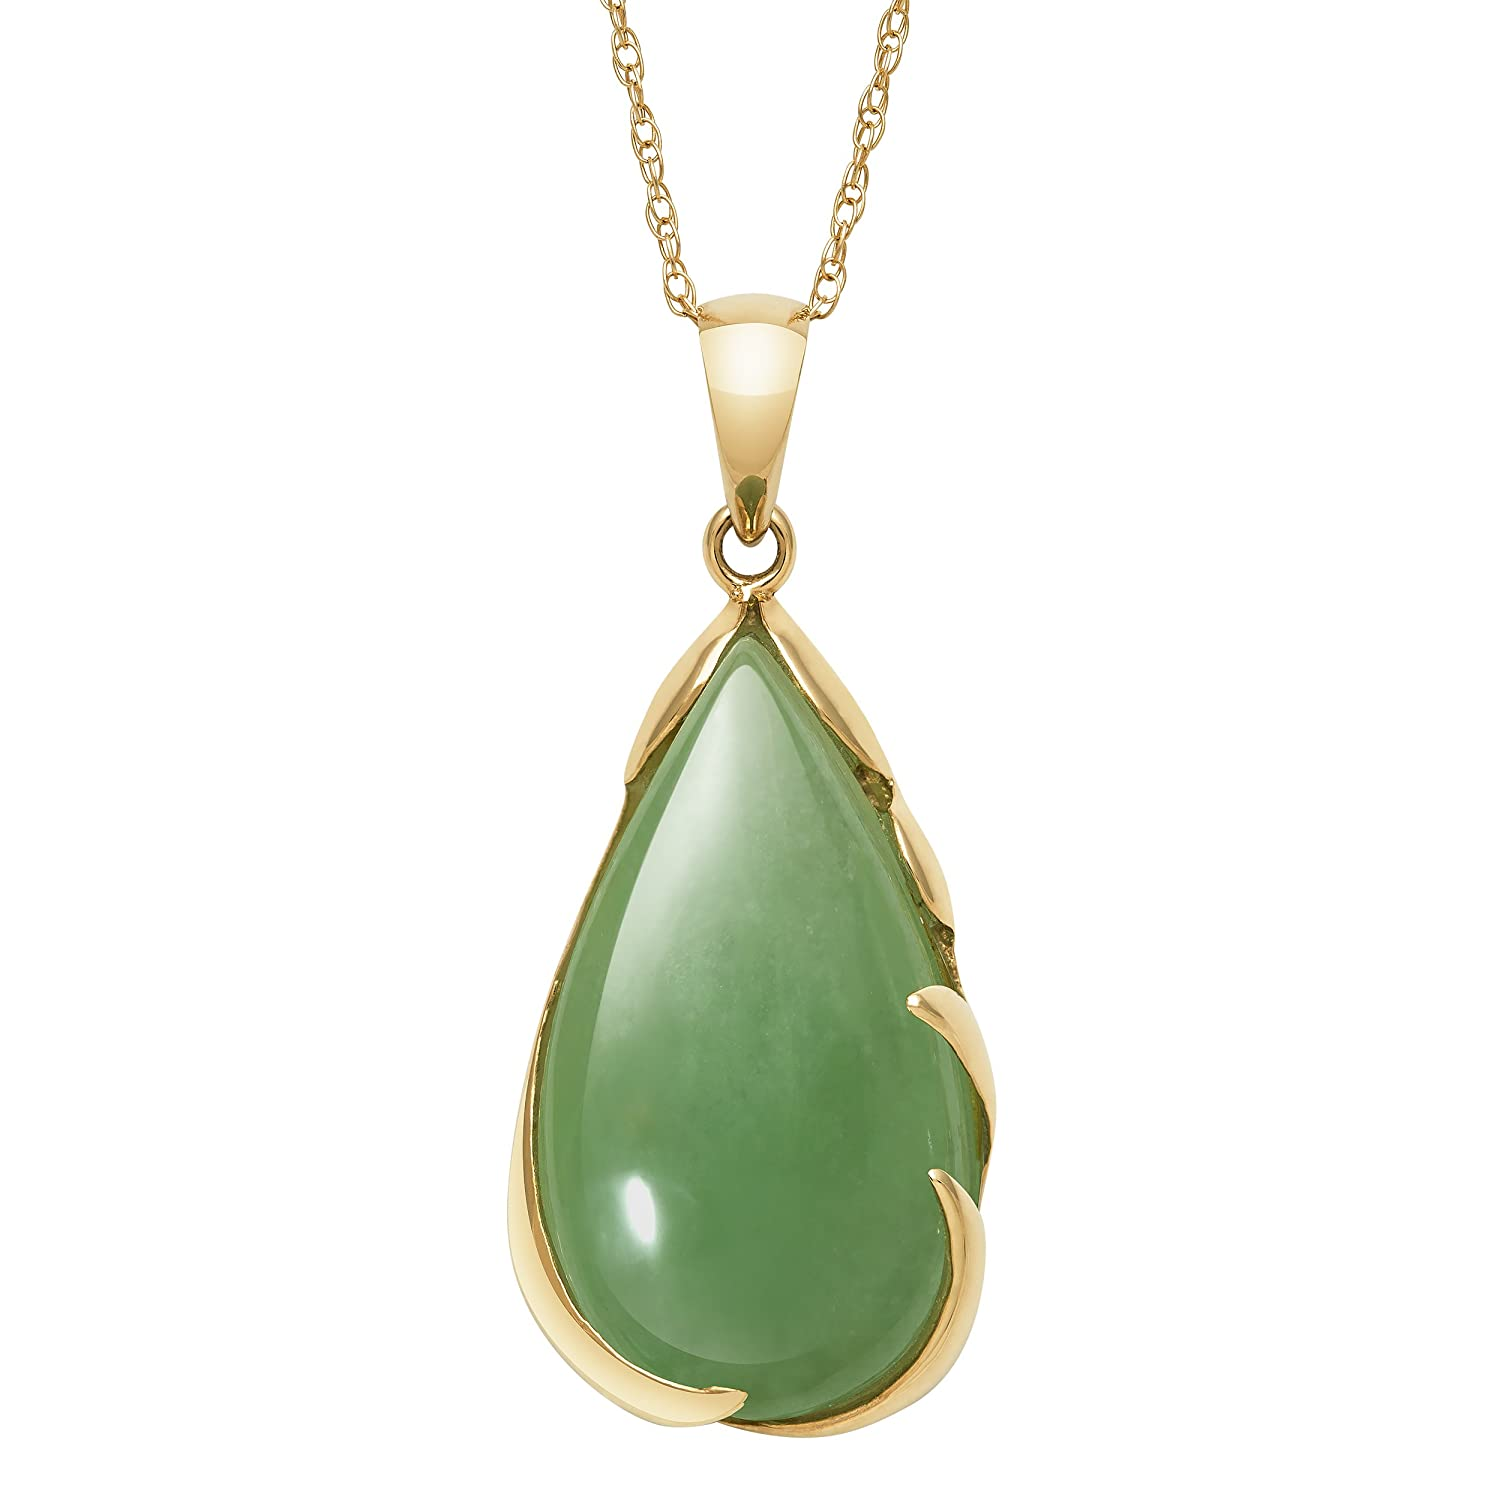 width jewelry pendant necklace bling v jade silver p green italian dyed sterling horn inches